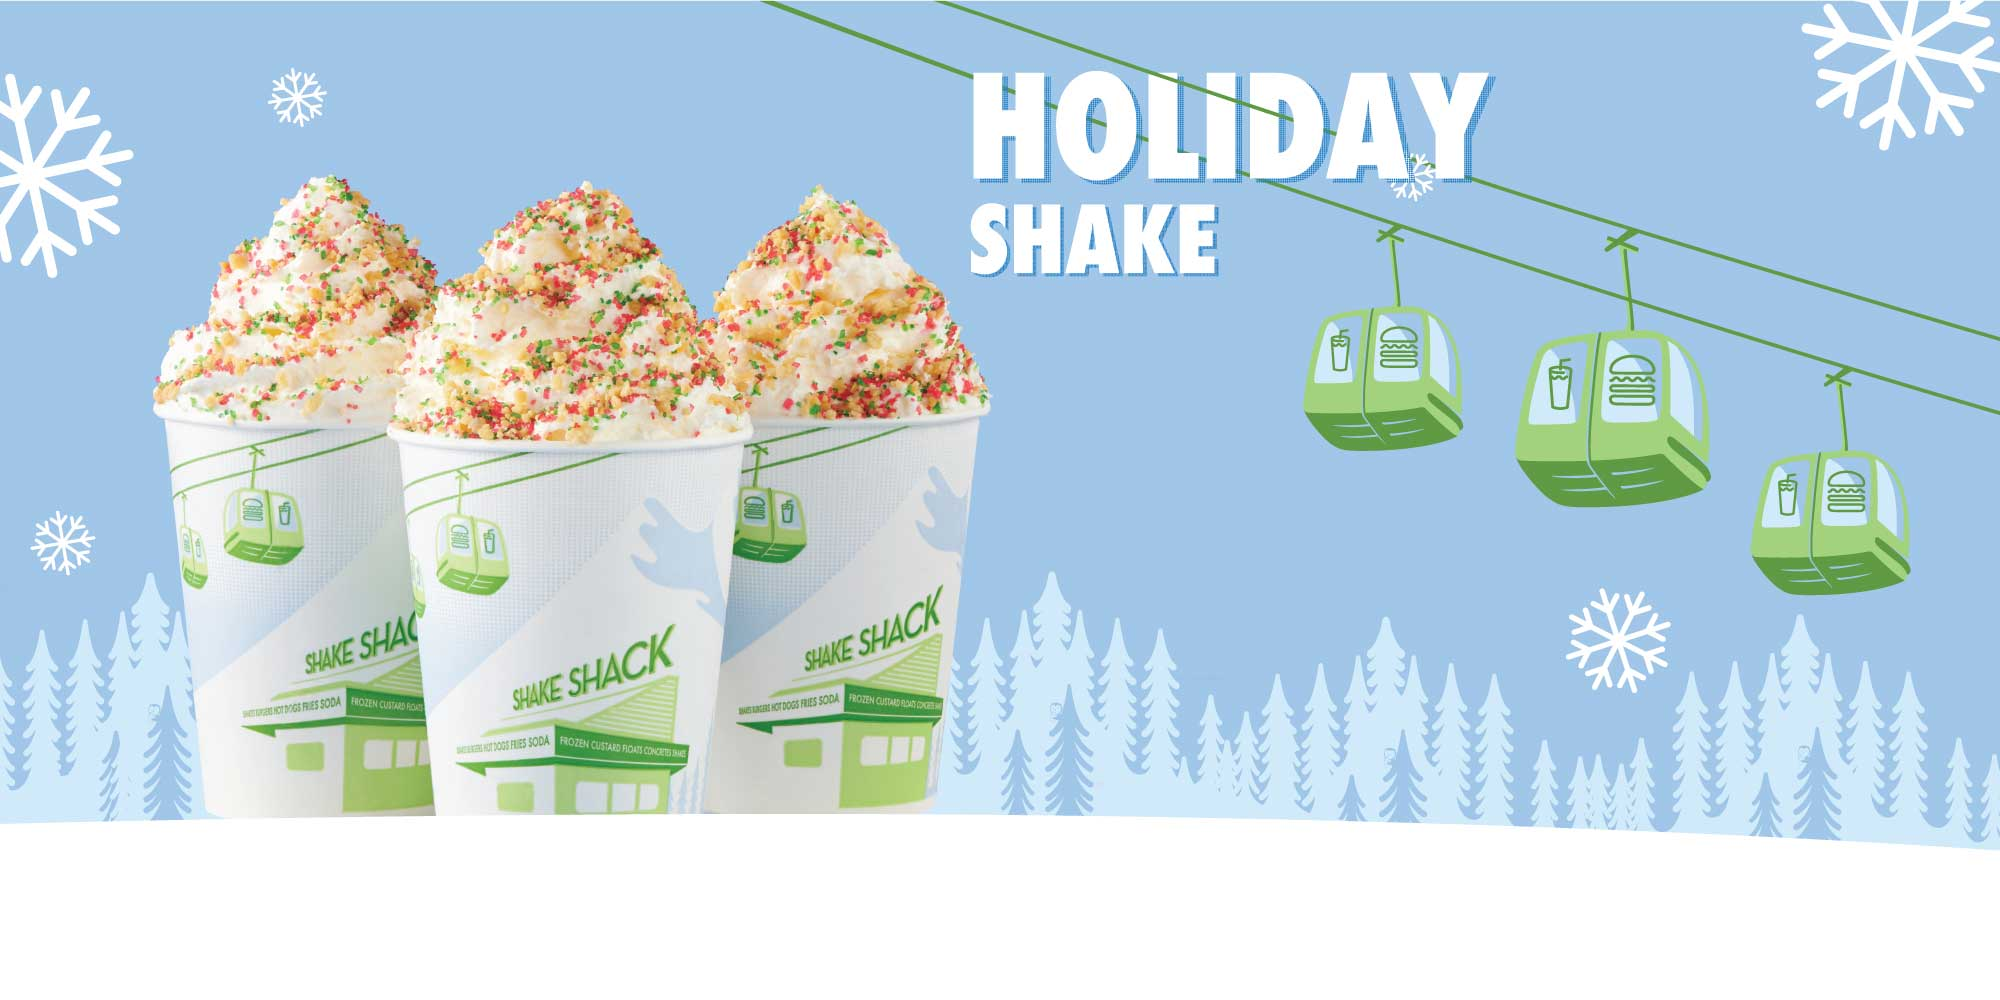 Christmas Cookie Shake, Shake Shack